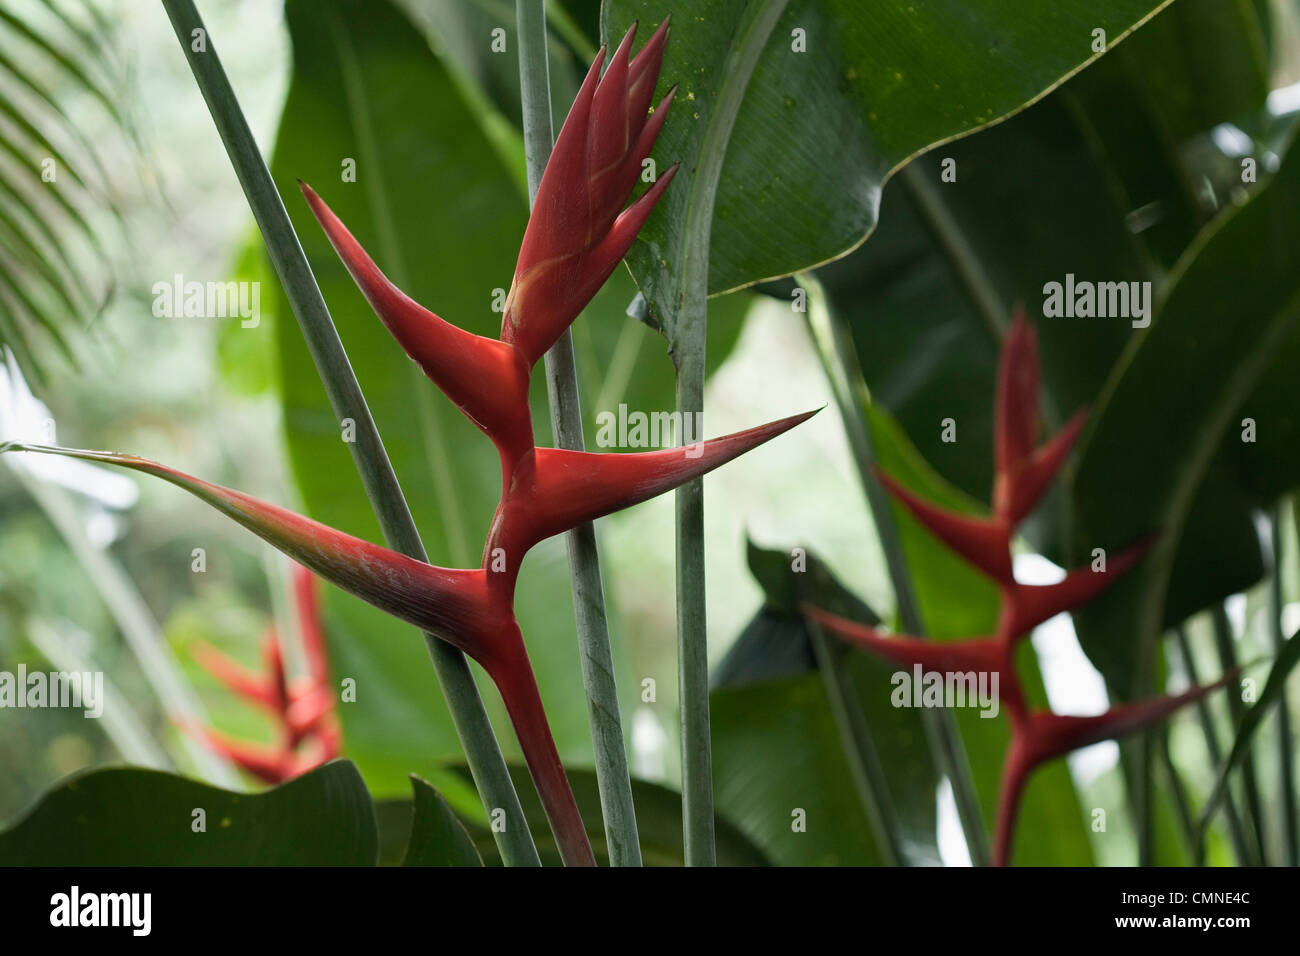 Heliconia bloom at the Daintree Eco Lodge and Spa. Daintree, Queensland, Australia - Stock Image